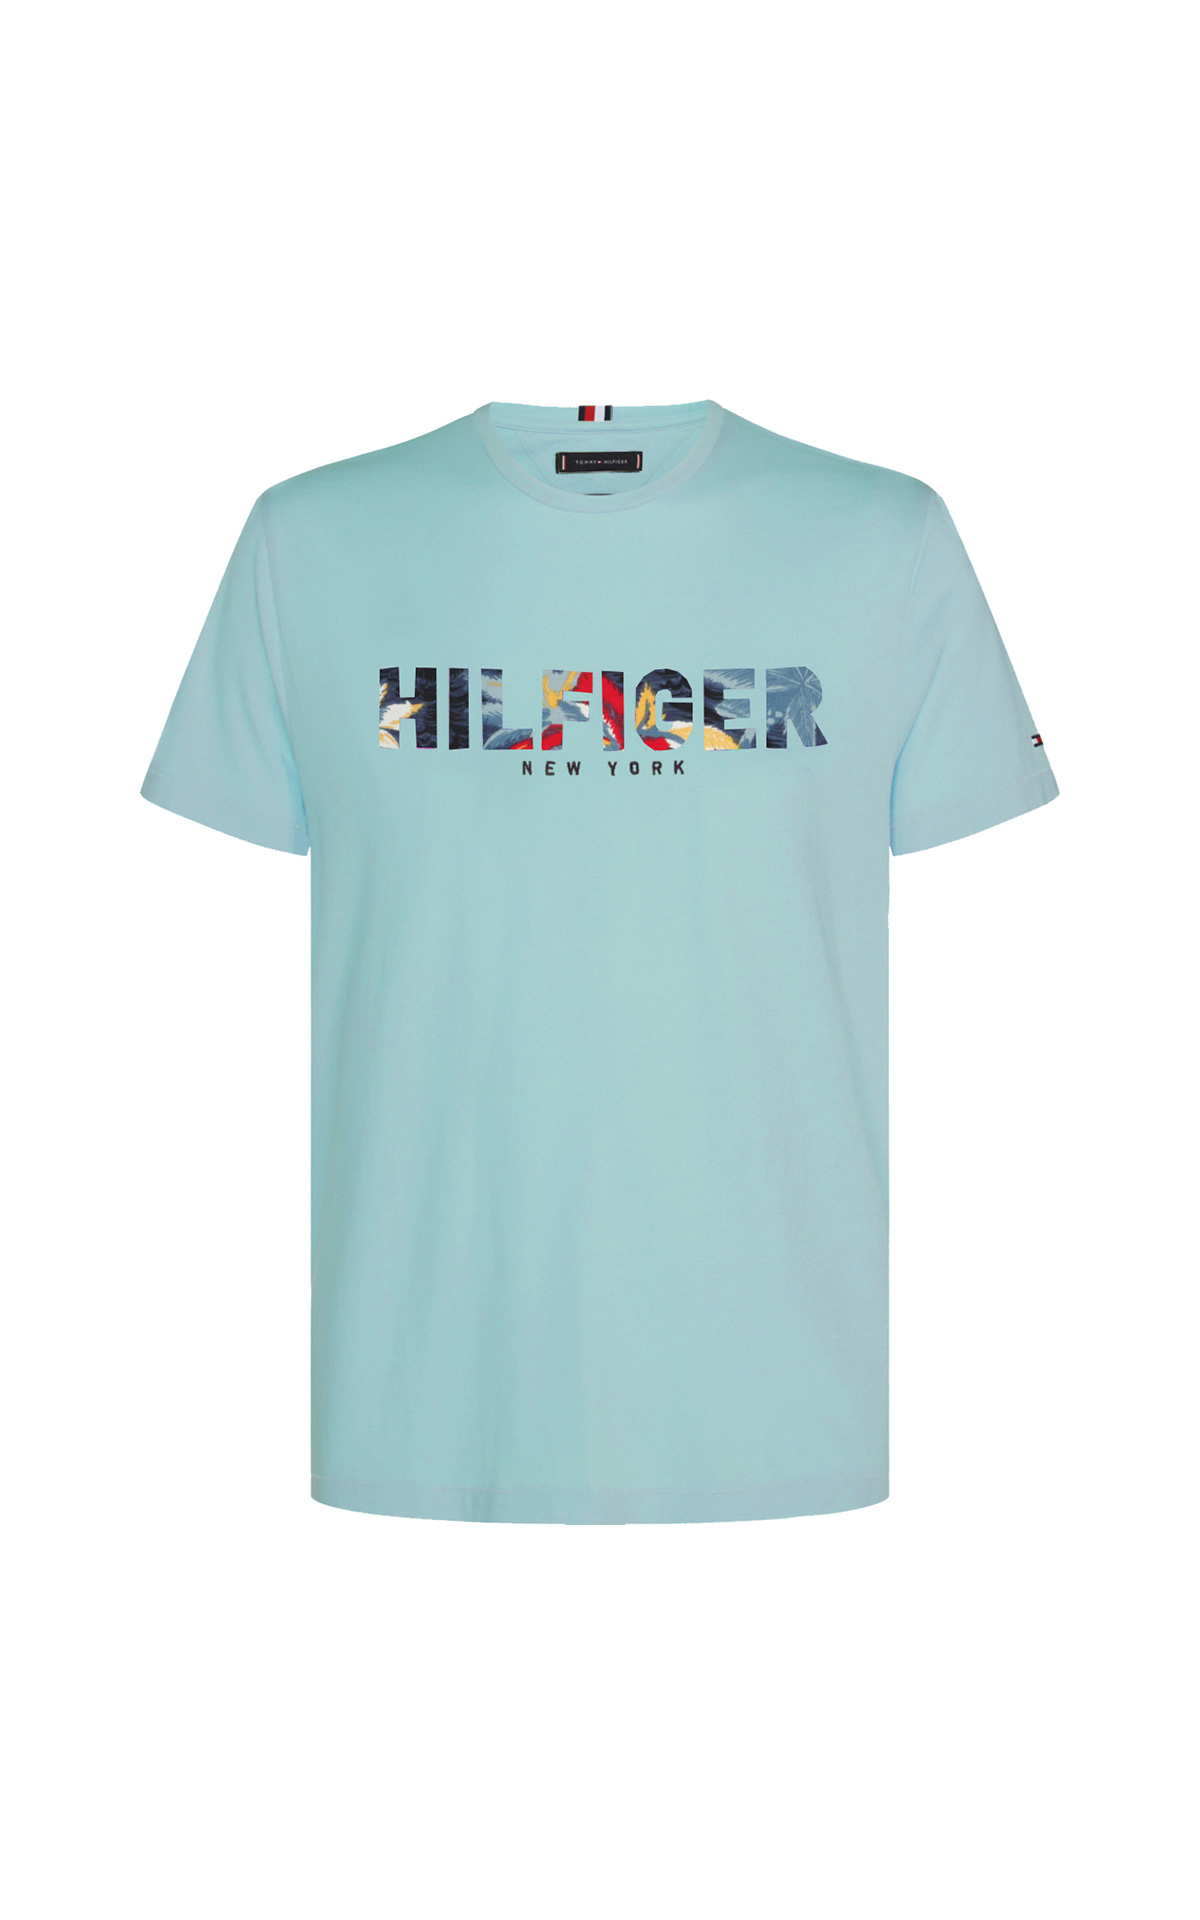 Tommy Hilfiger t-shirt at The Bicester Village Shopping Collection